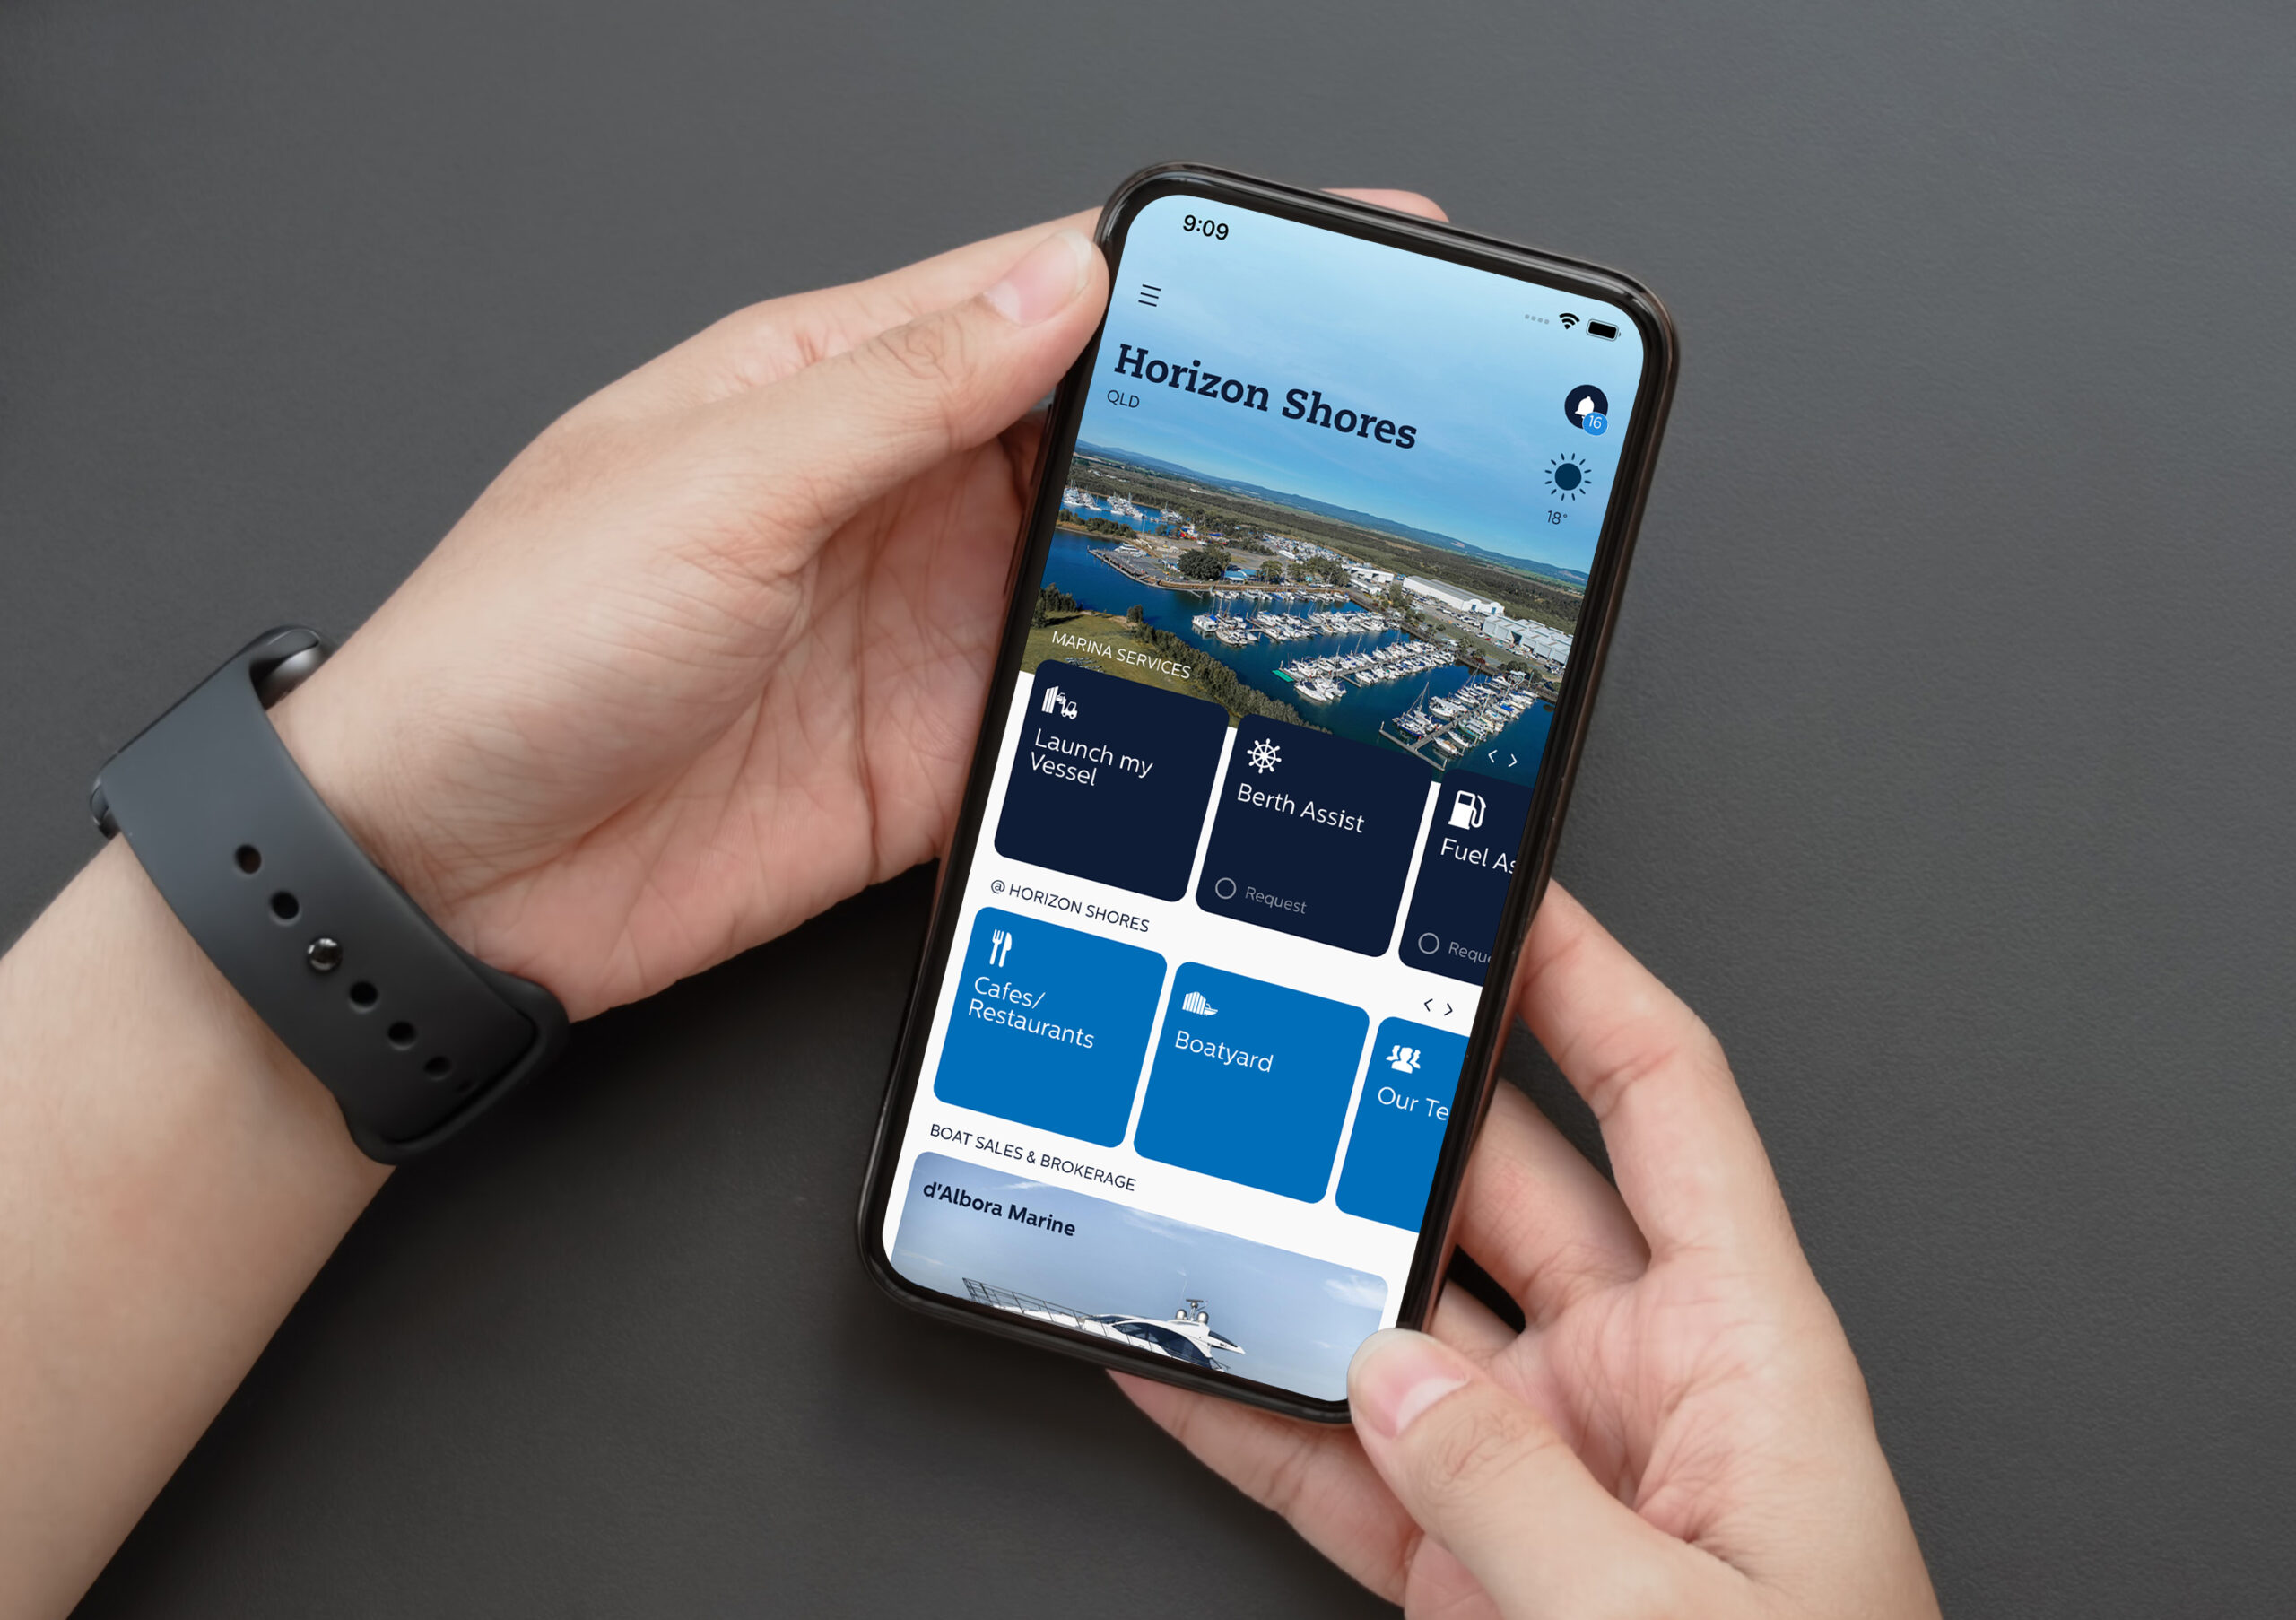 D'Albora app being used on a smartphone